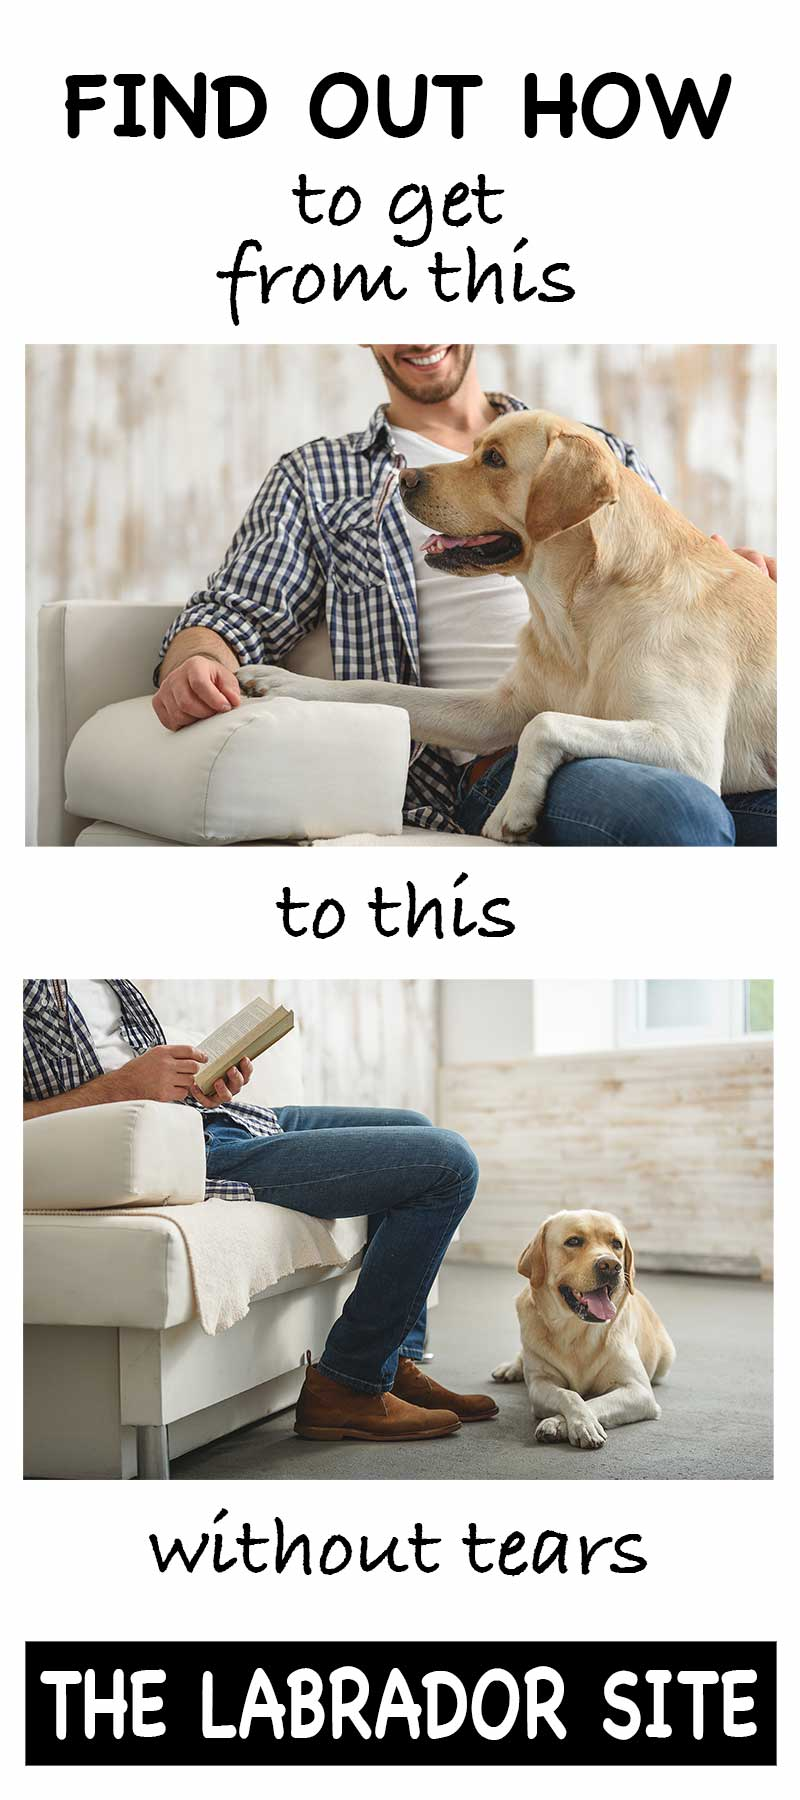 Attention seeking dog? Teach your dog to settle while you read or watch TV